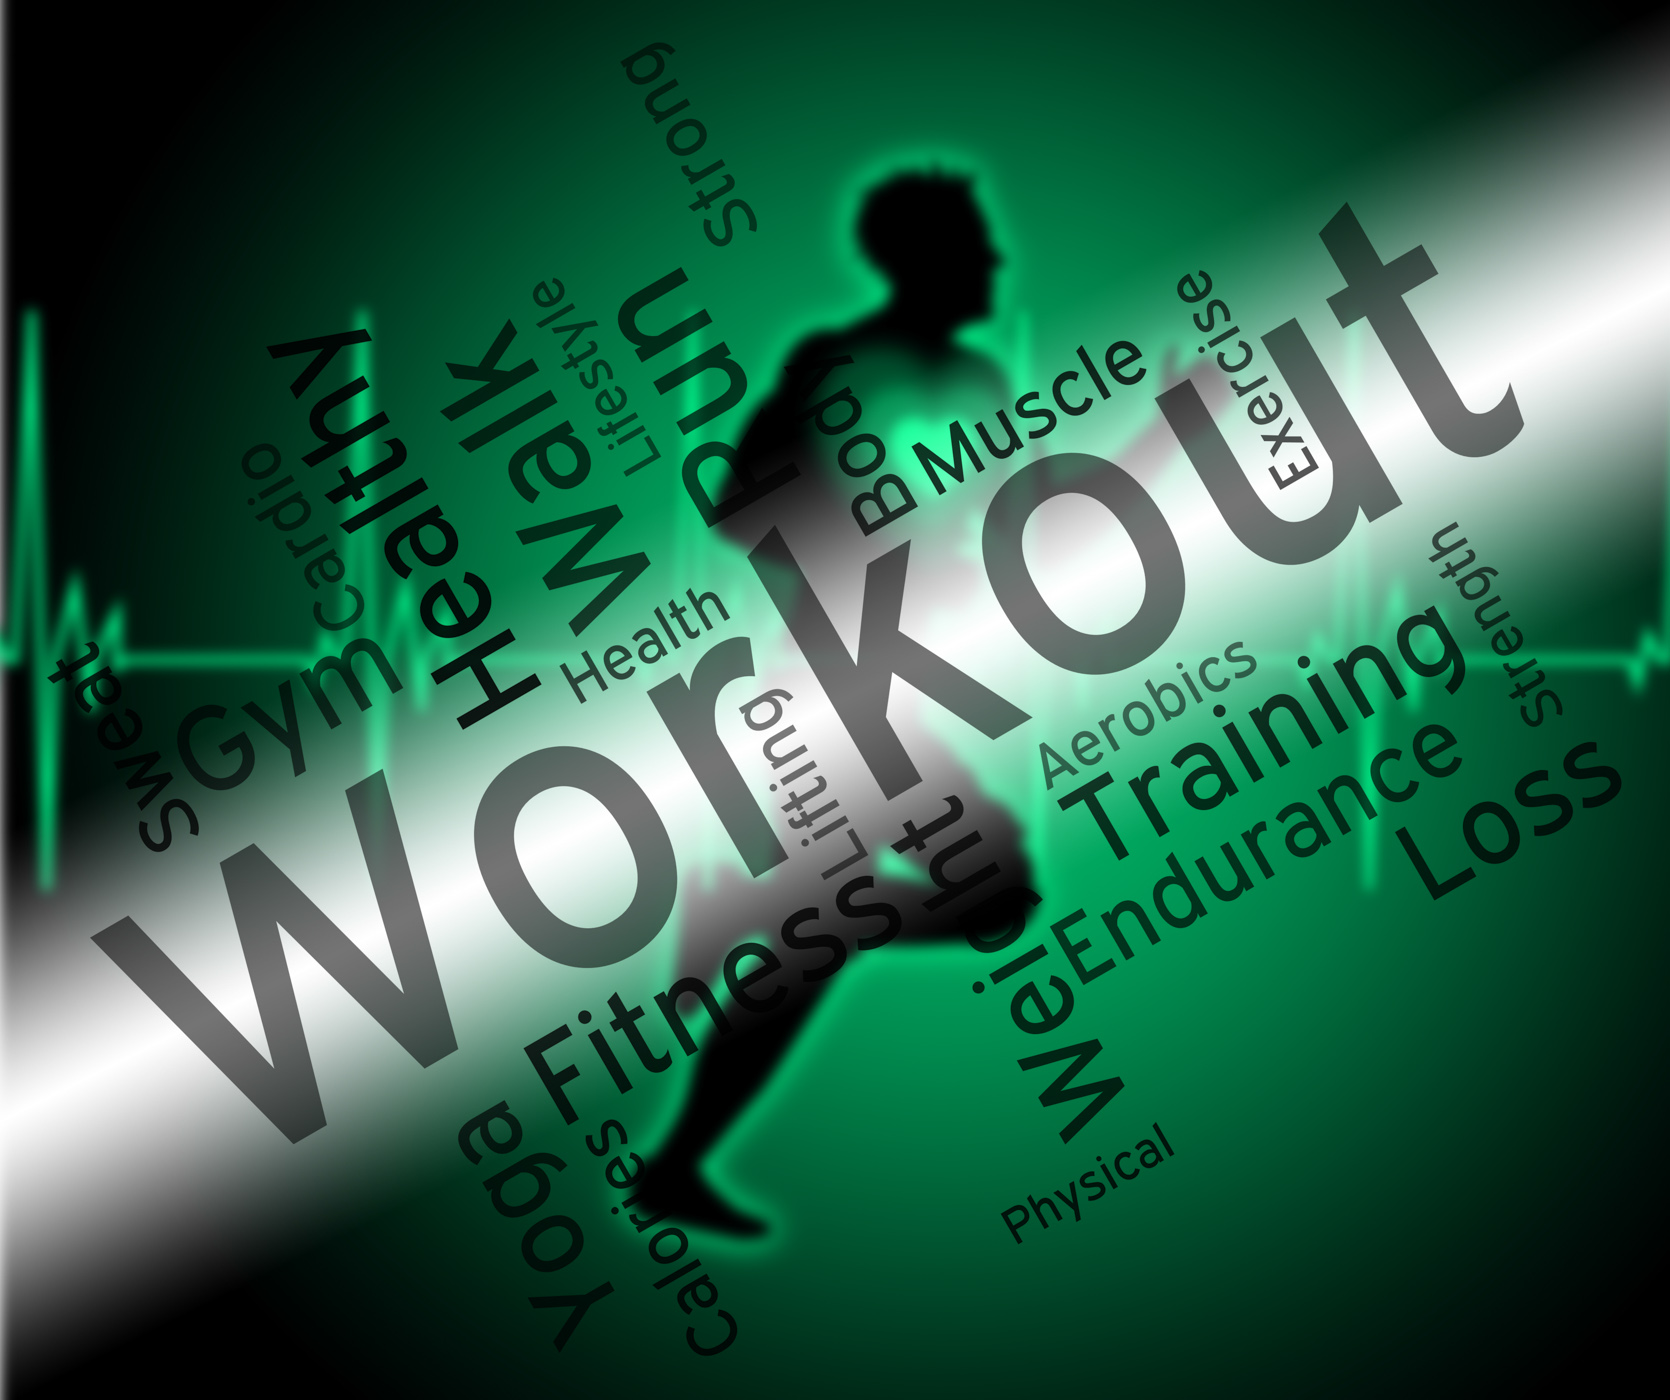 Workout words shows physical activity and athletic photo